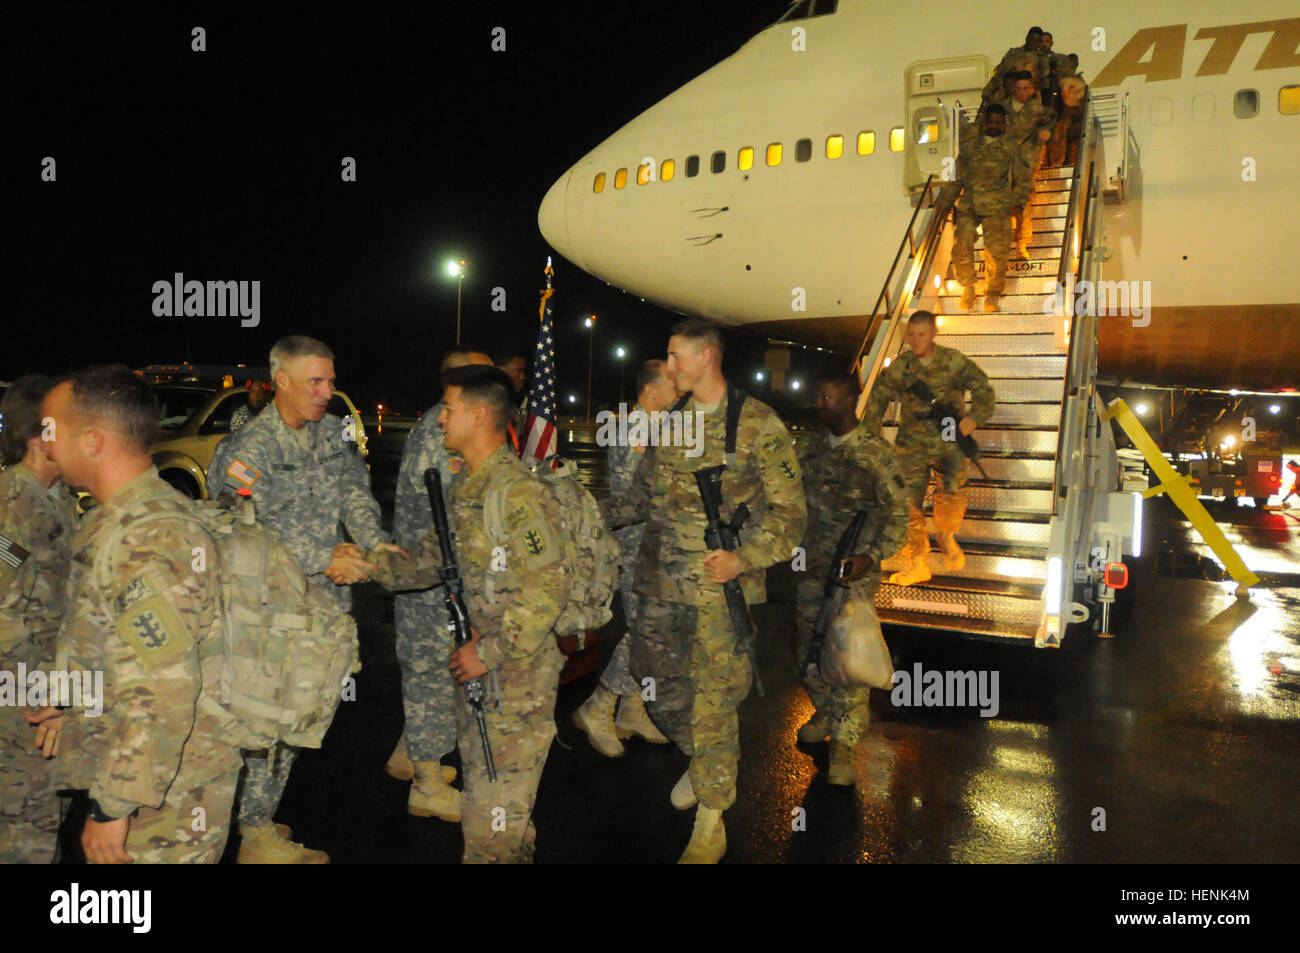 One Hundred And Eighty Eight Soldiers From The 65th Engineer Battalion 130th Brigade Departed An Airplane June 20 At Joint Base Pearl